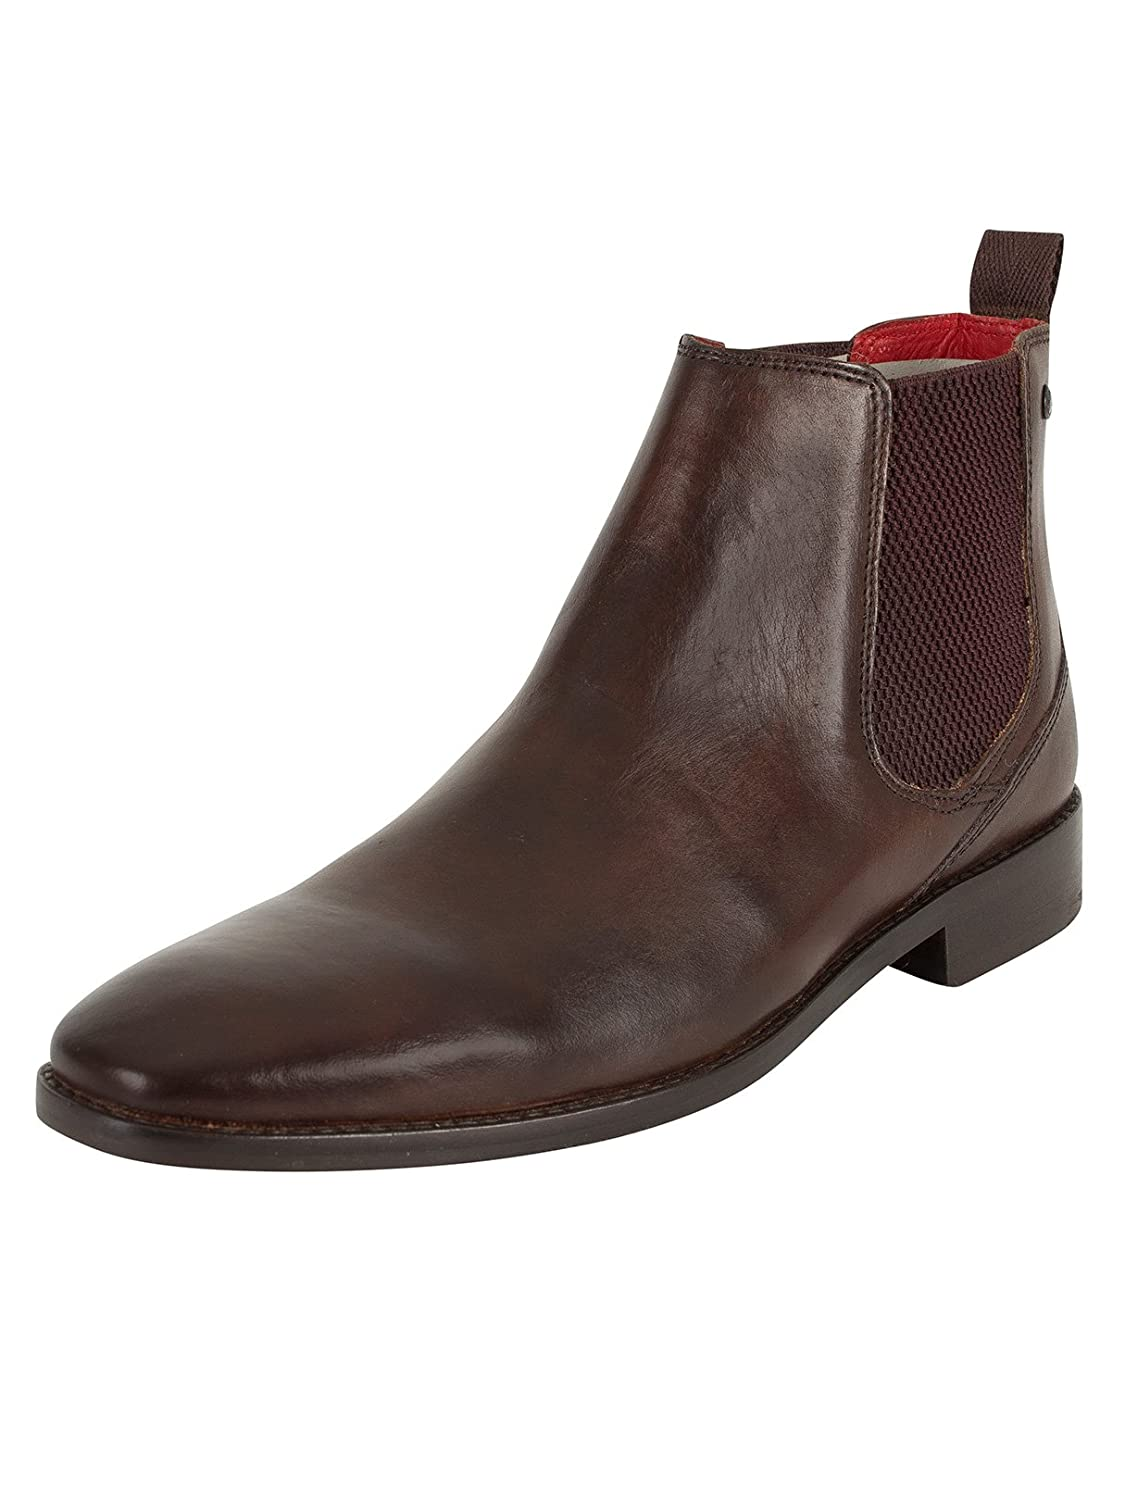 Base London Mens Brown Leather 'Cheshire' Chelsea Boots